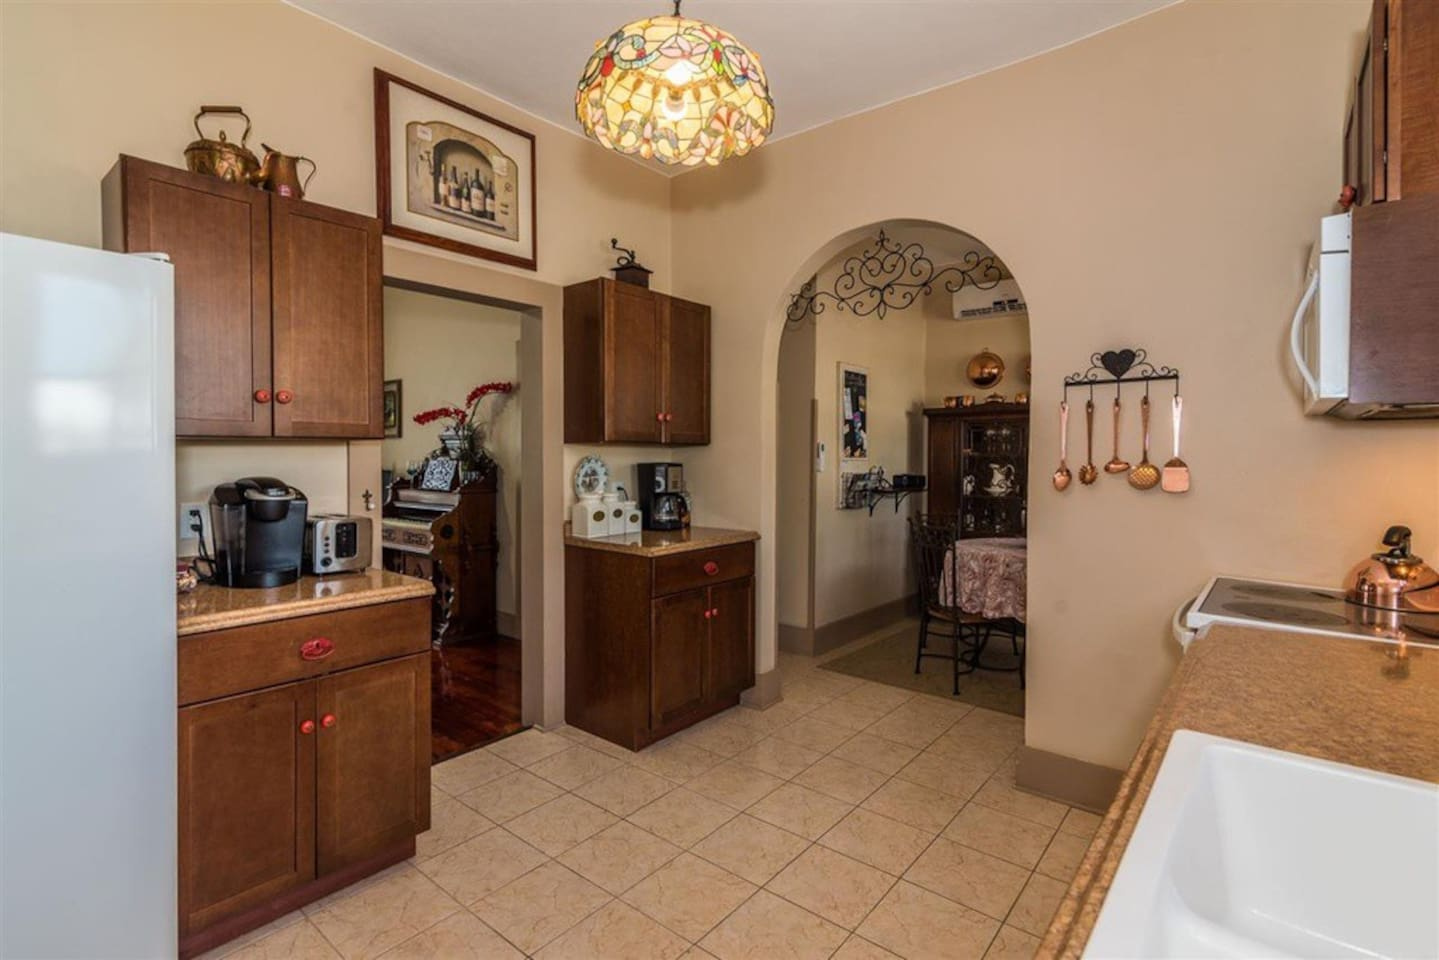 paradisi place victorian house best deal in town houses for paradisi place victorian house best deal in town houses for rent in saint augustine florida united states